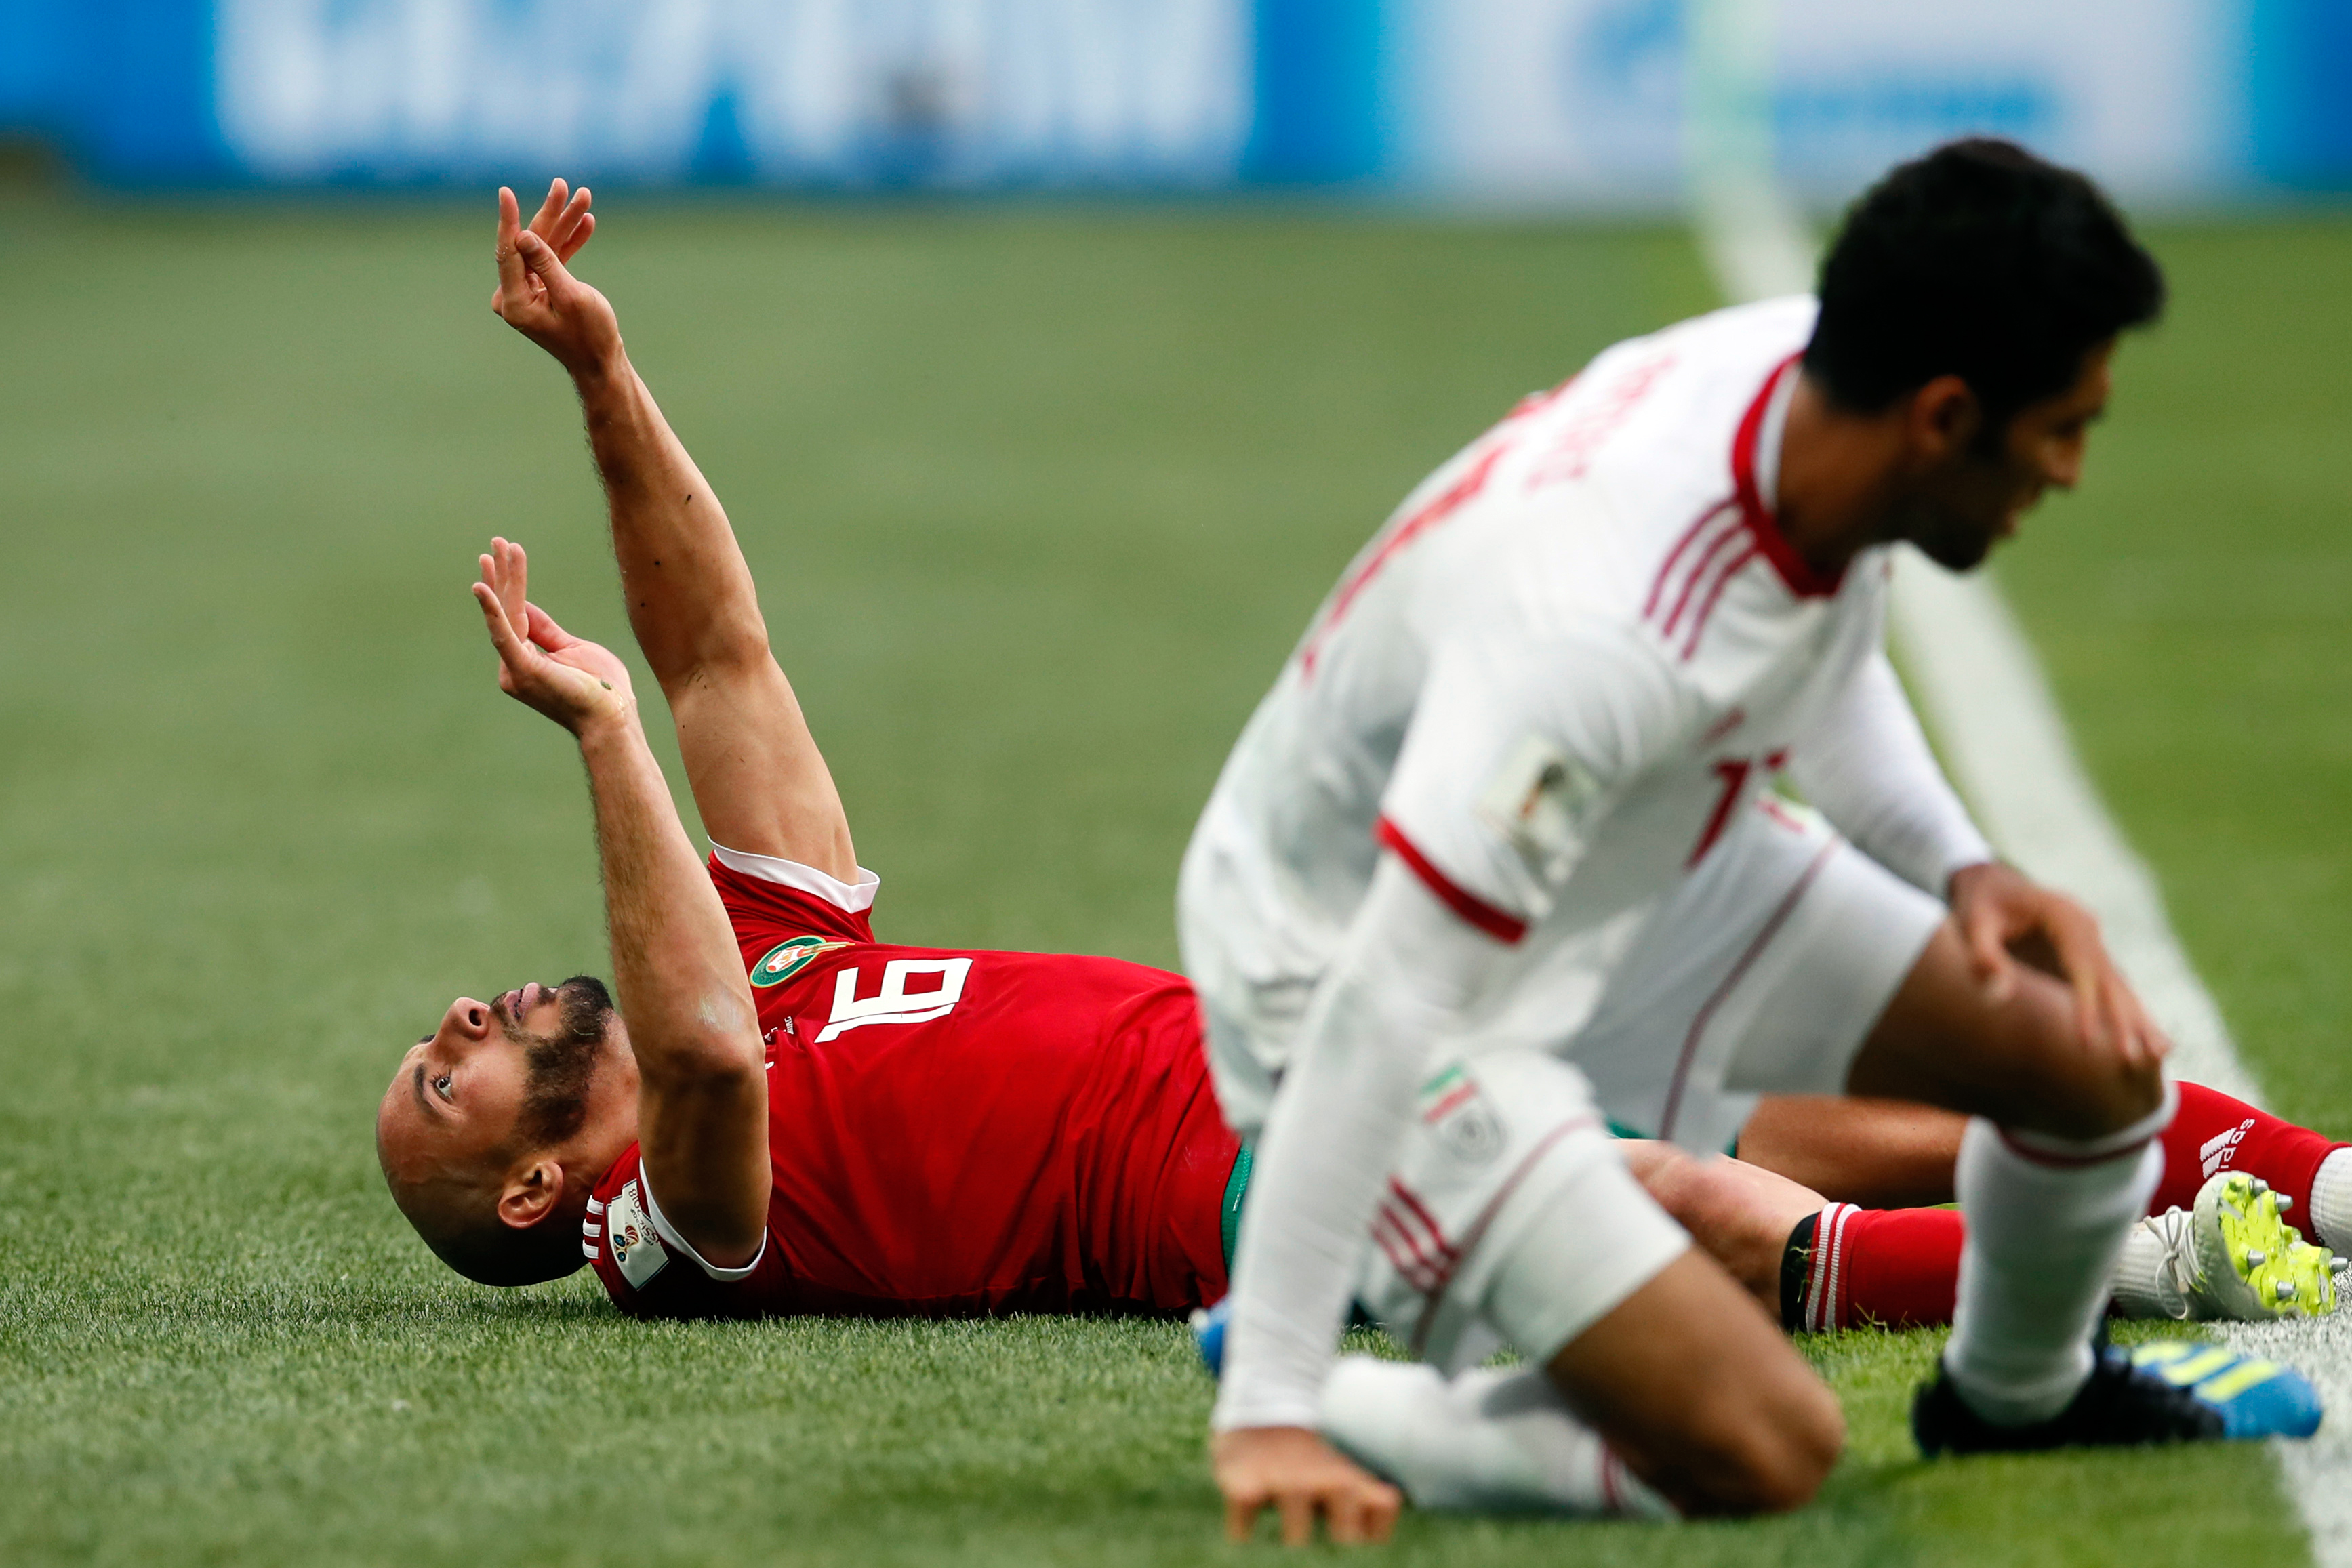 FIFA's CTE Problem: Are Soccer Regulators Doing Enough to Prevent Brain Injuries?